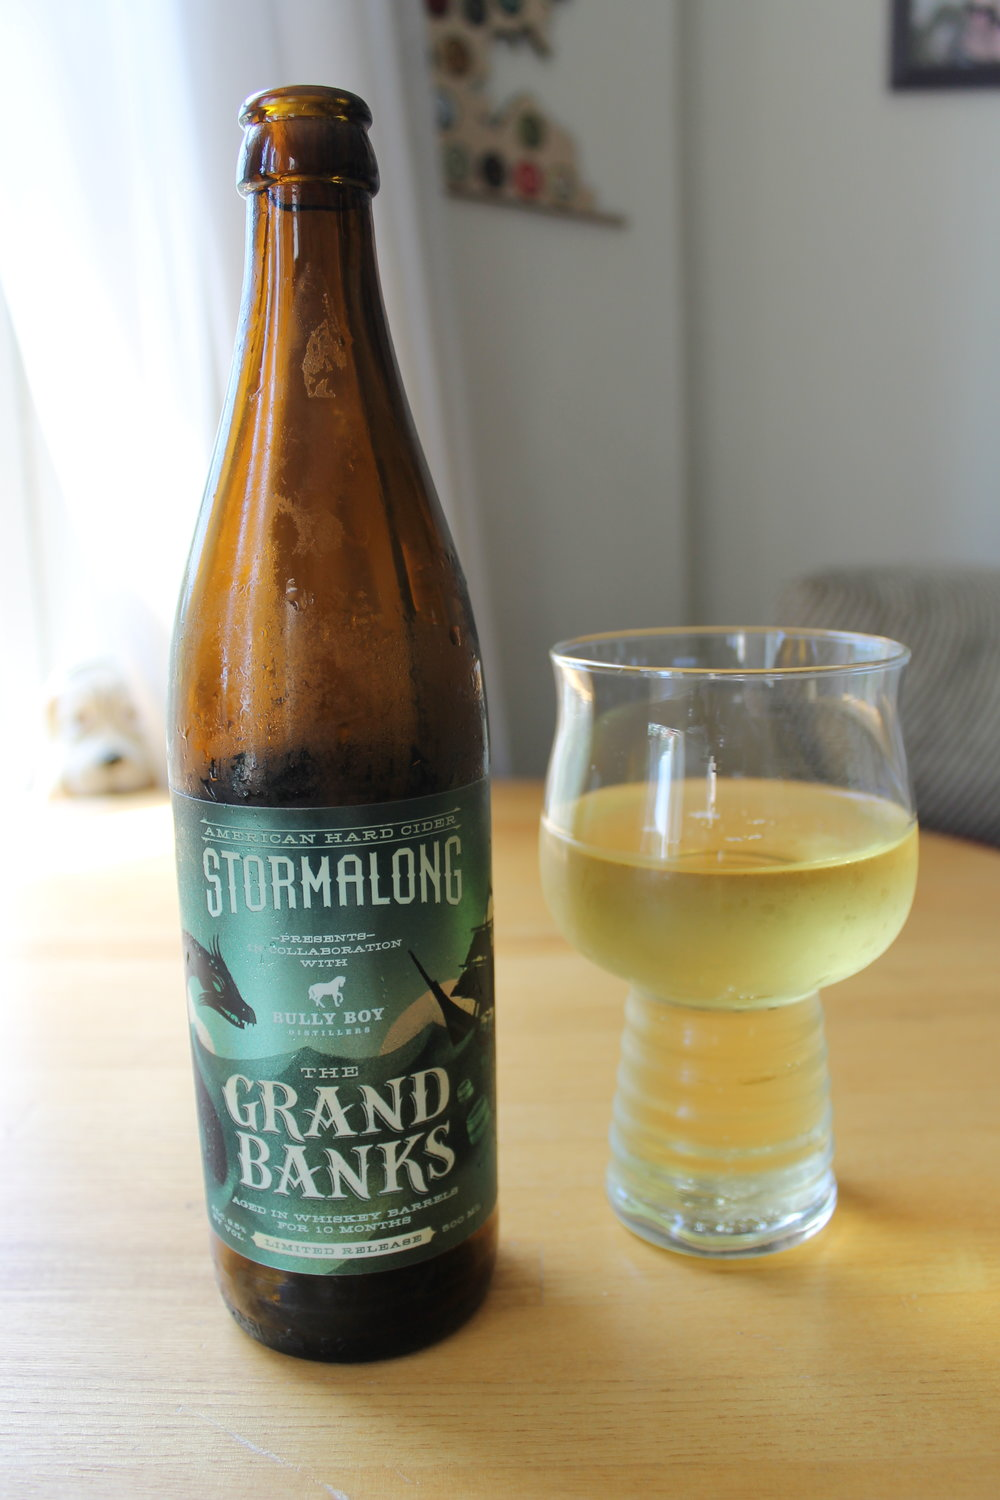 Stormalong Cider: The Grand Banks - Whiskey Barrel Aged